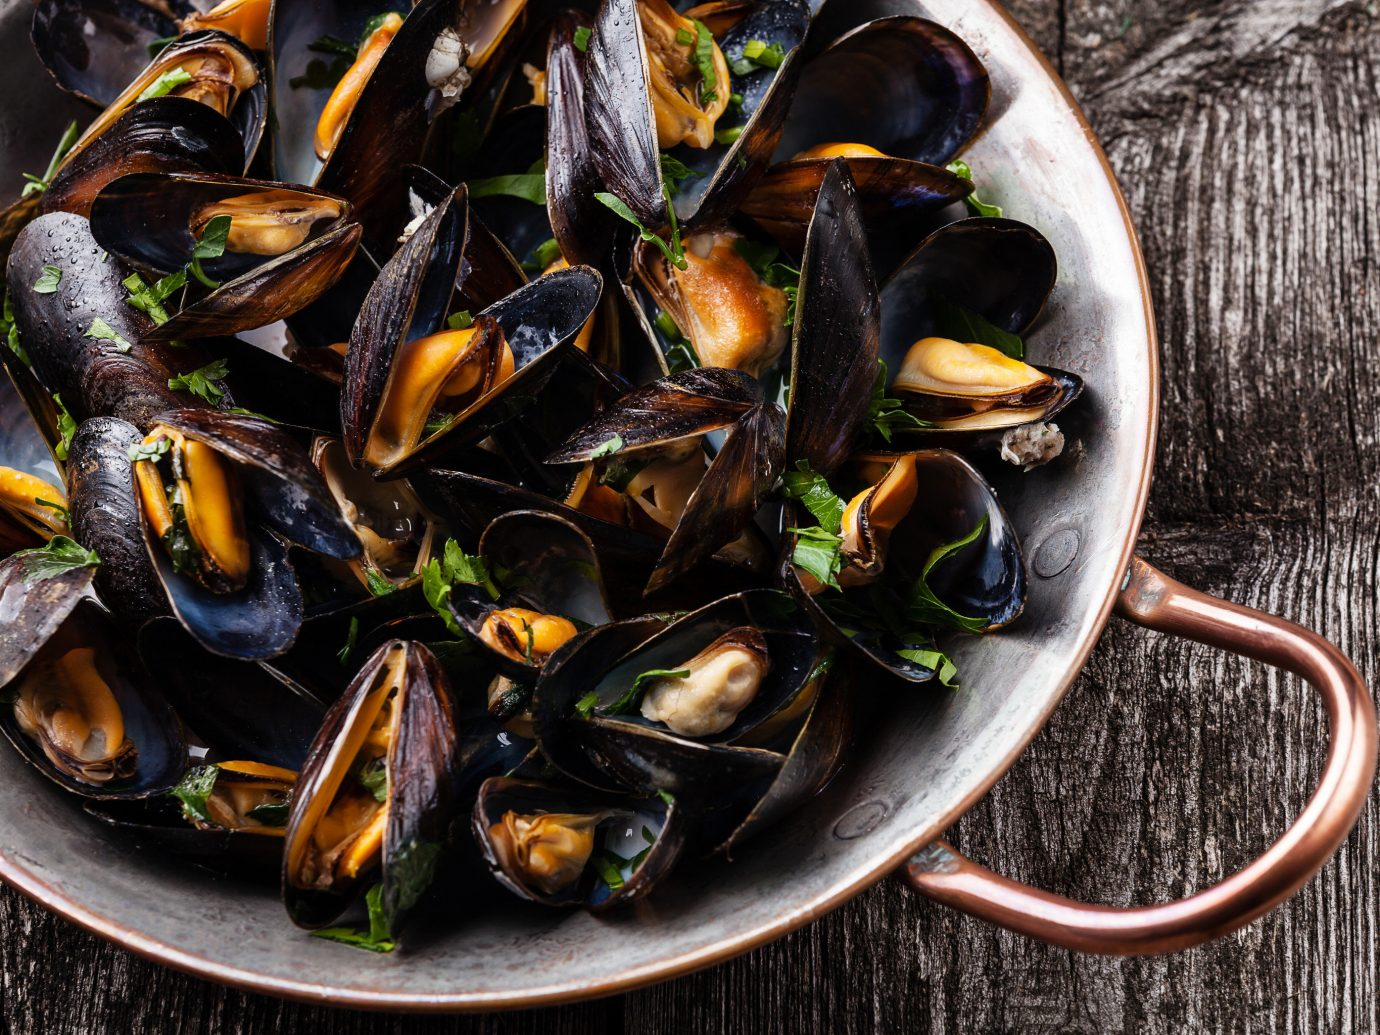 Food + Drink food mussel invertebrate Seafood animal source foods fish clams oysters mussels and scallops molluscs